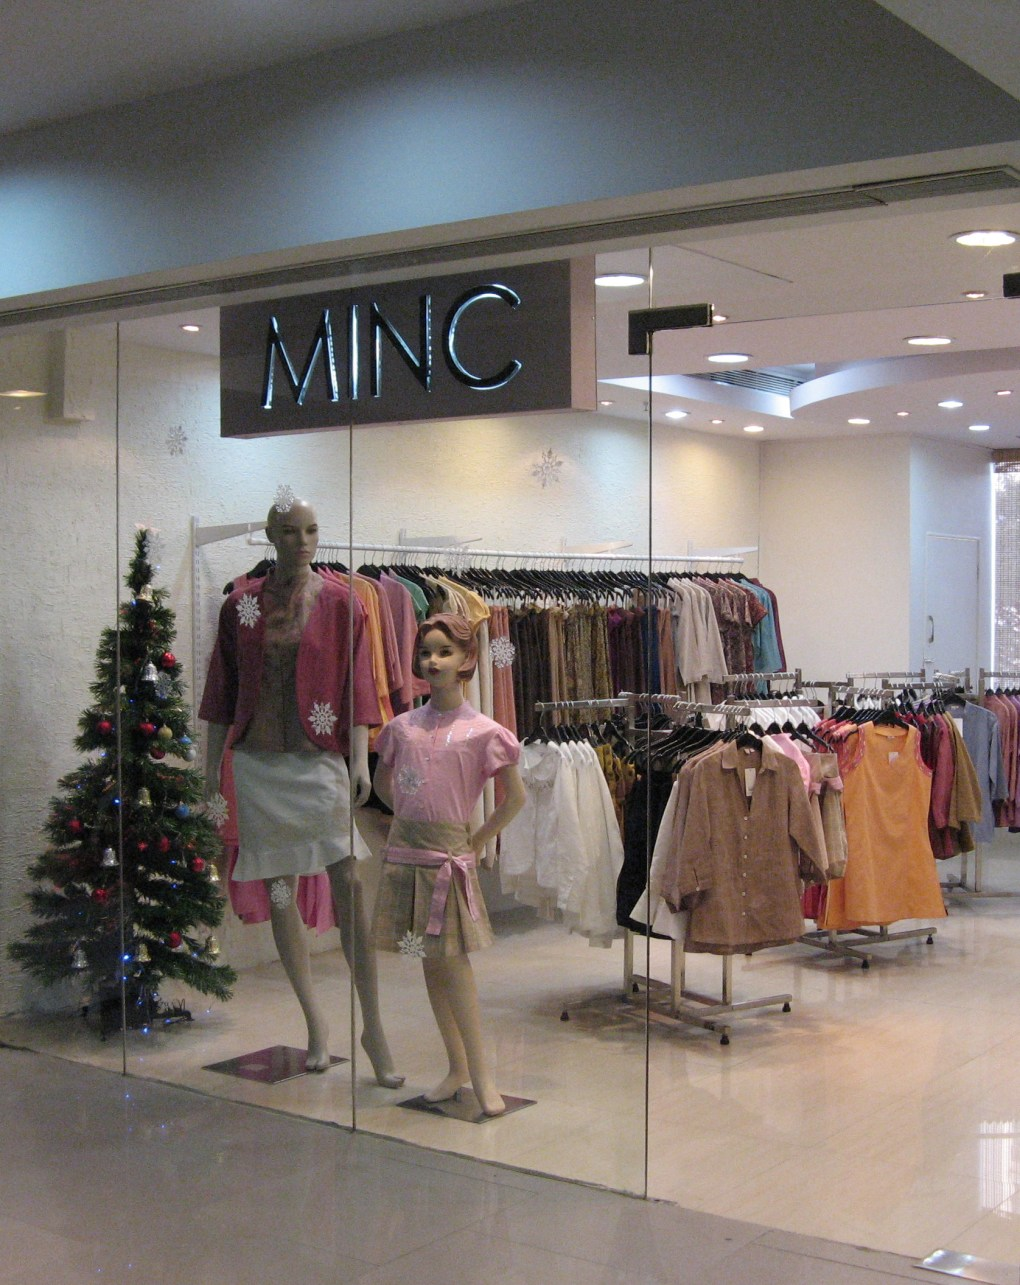 MINC Sigma Mall Store as featured in Going all natural